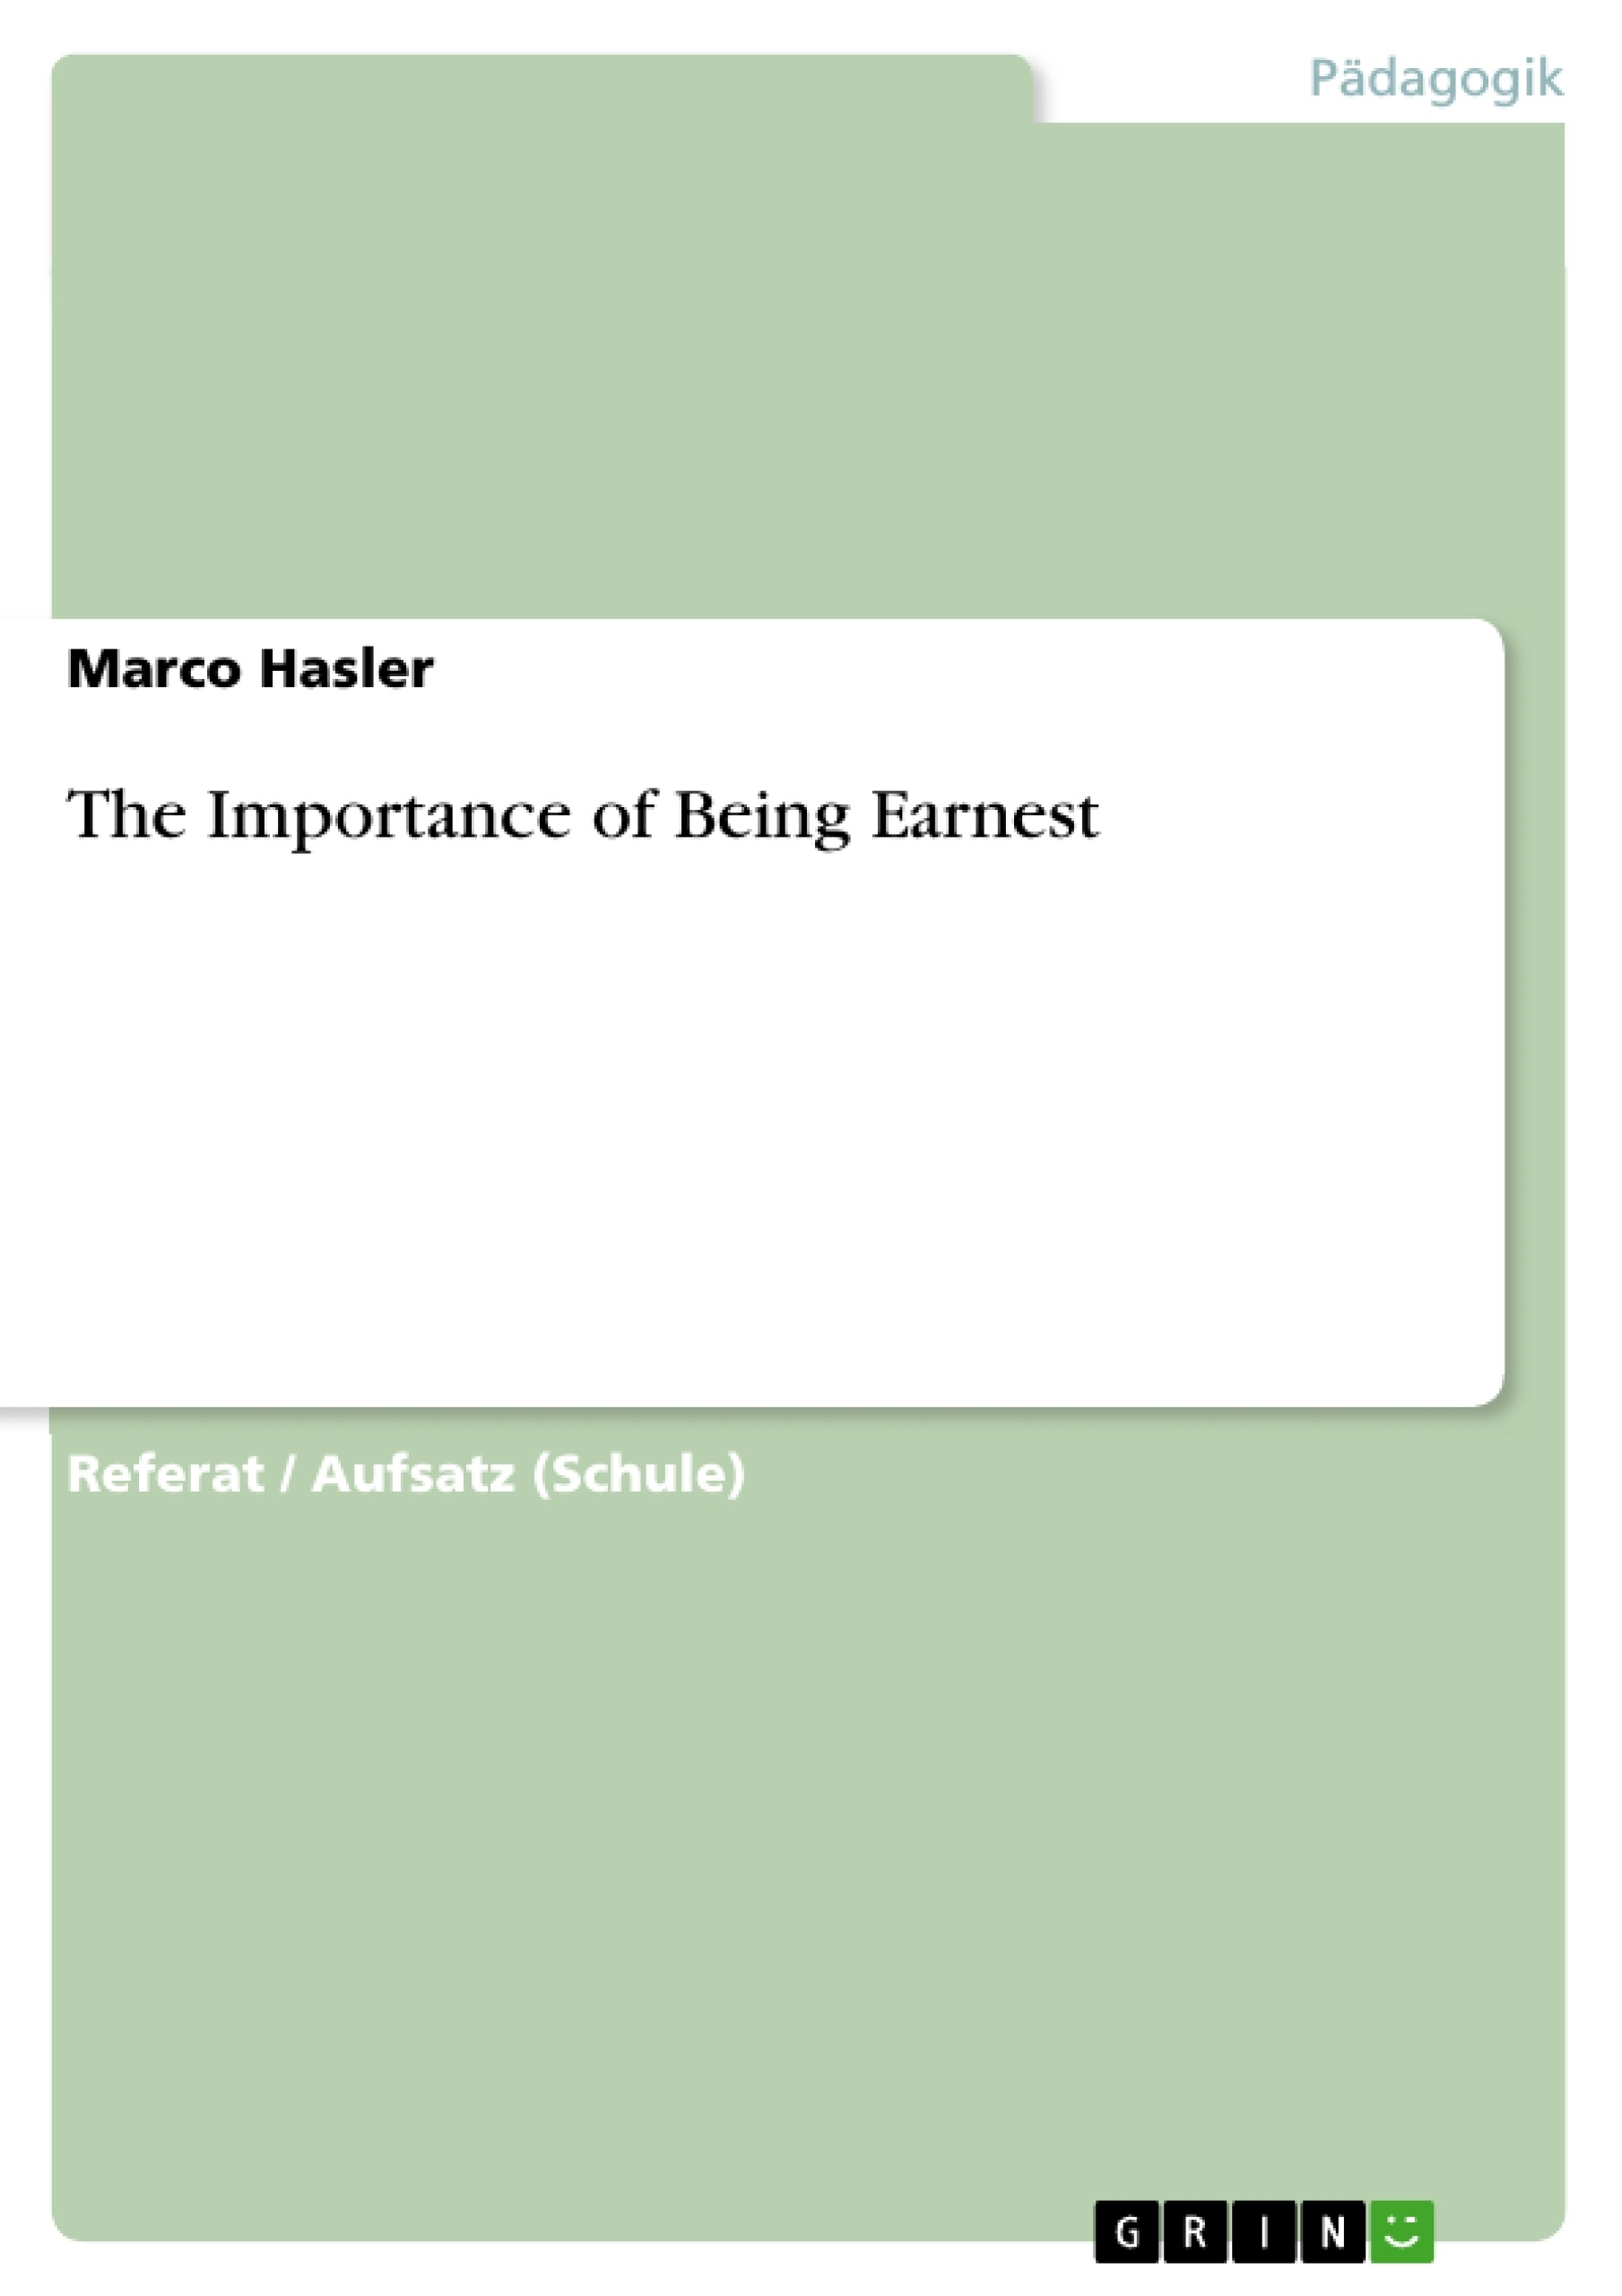 Titel: The Importance of Being Earnest